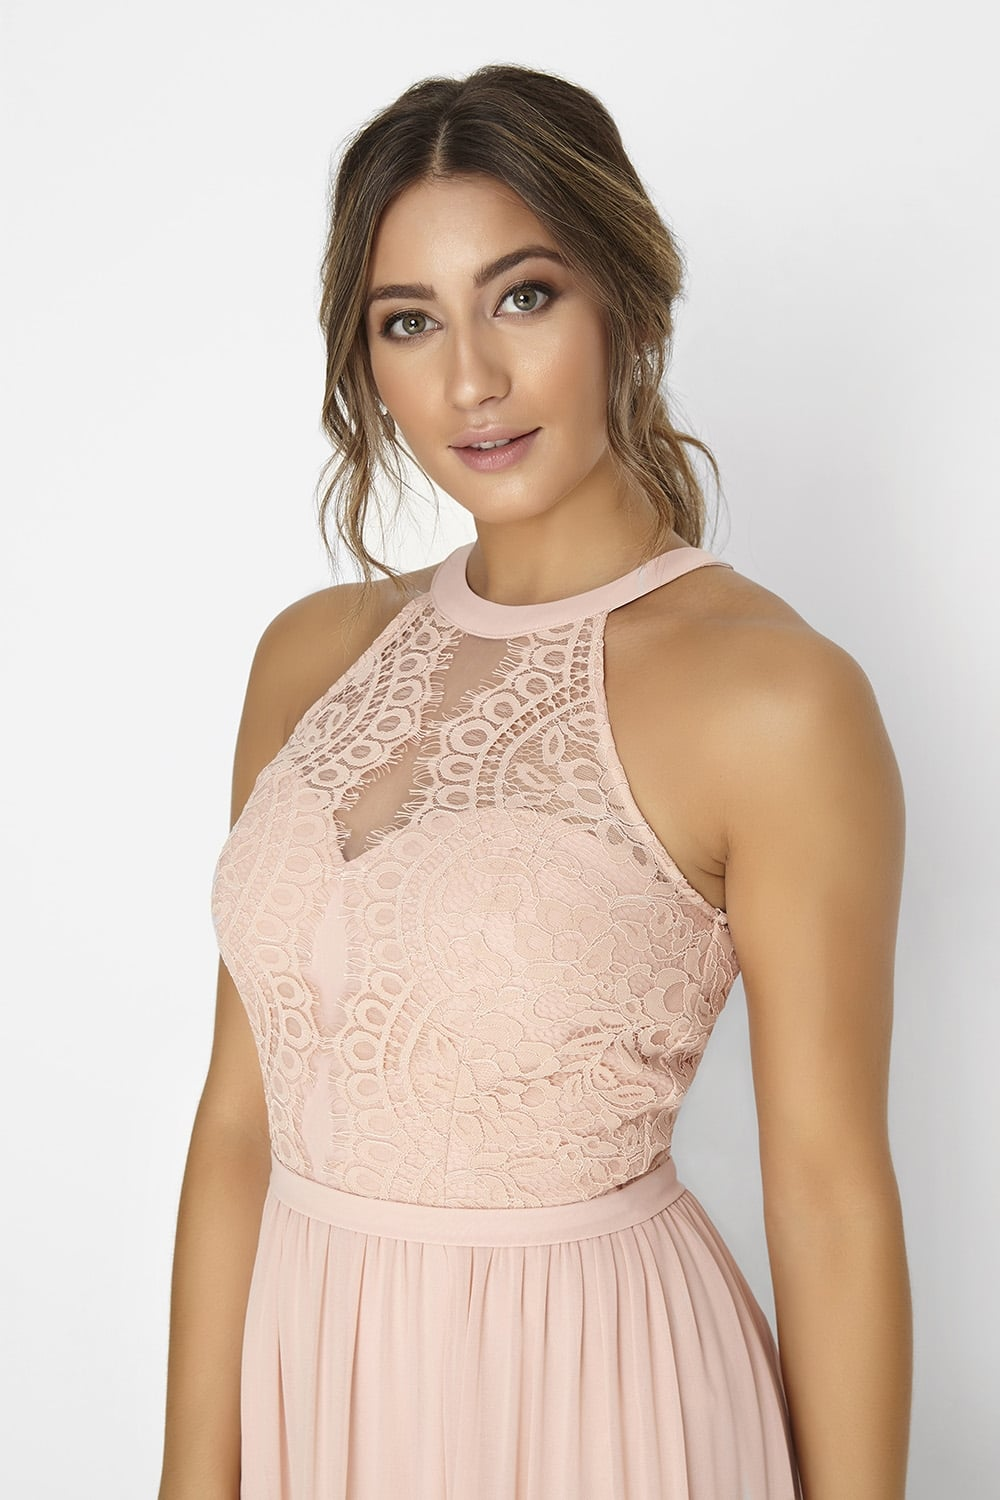 Salmon Pink Lace Dress - from Little Mistress UK